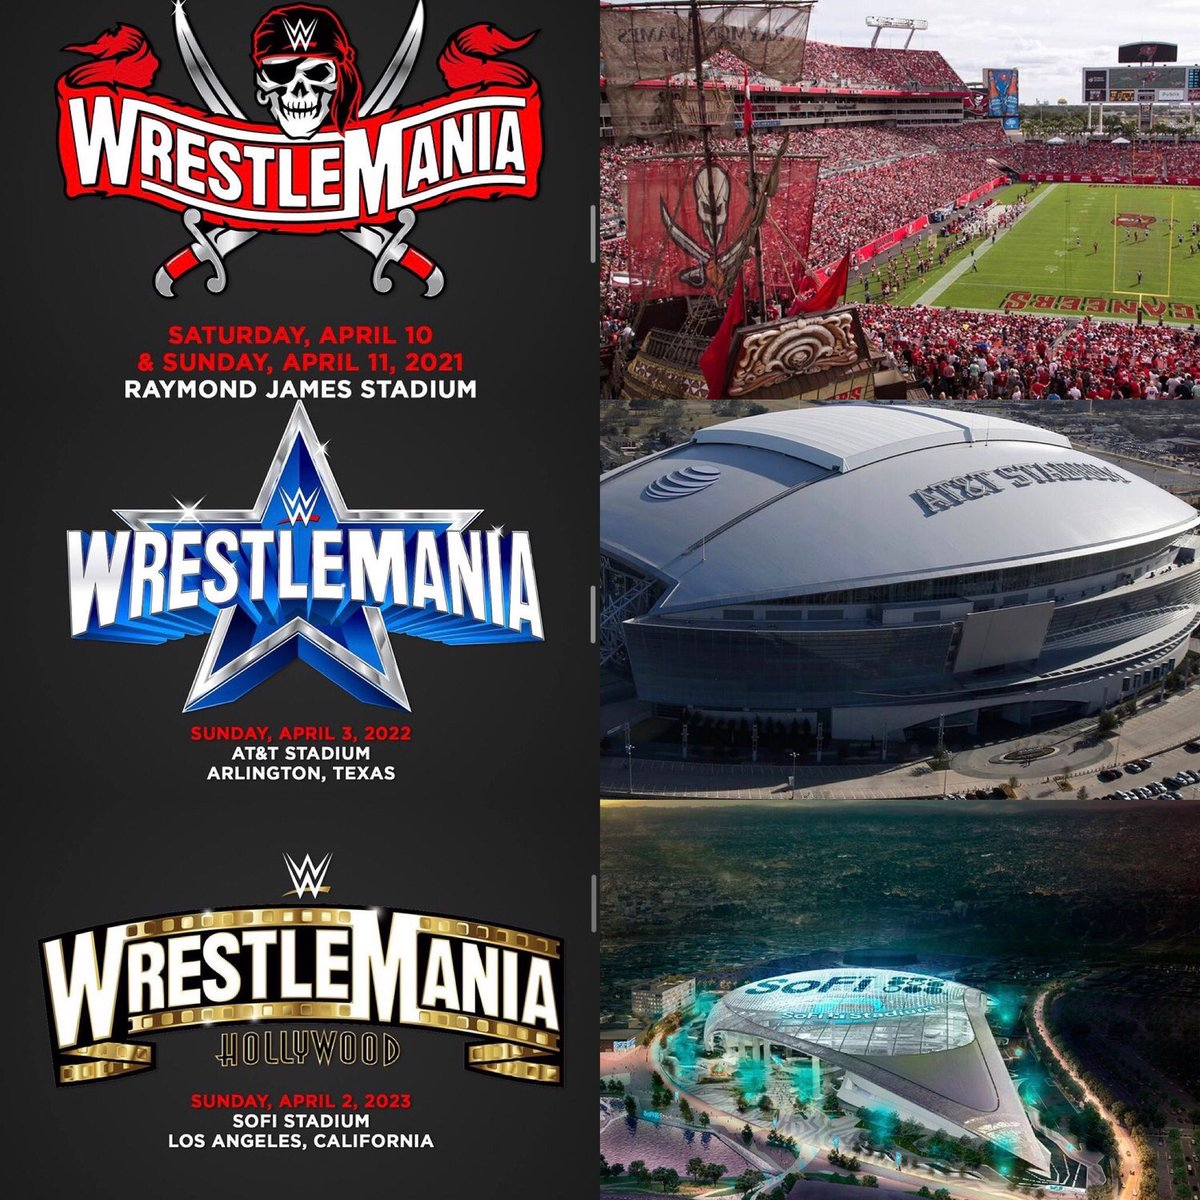 3 LIT 🔥 WrestleManias coming soon, next year, and after that!! 🏴‍☠️🤠🤩 #WrestleMania #wweraw #smackdown #wwenxt